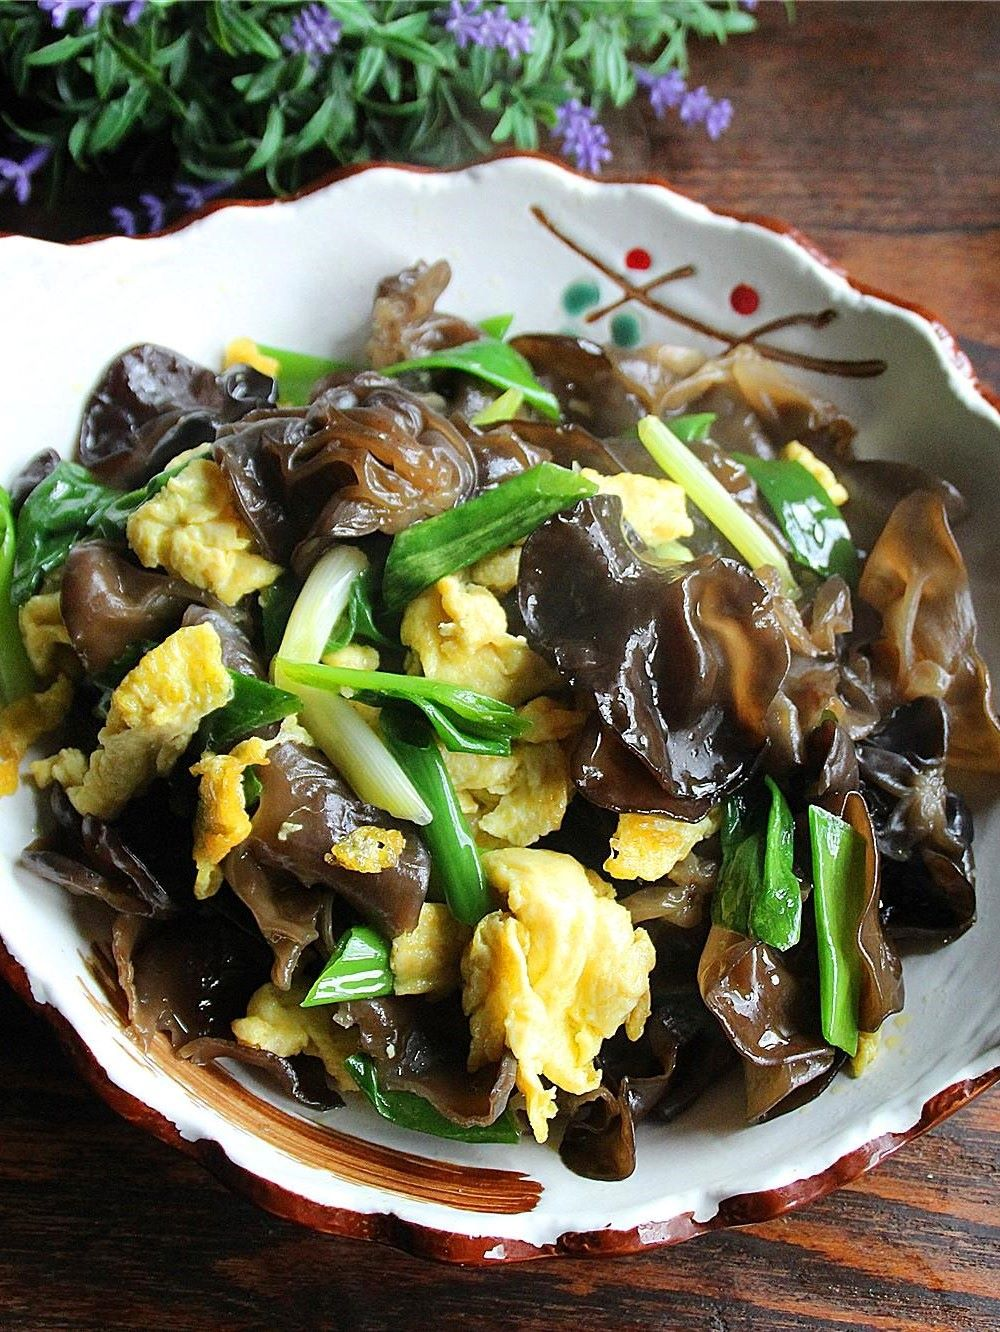 Scrambled Eggs with Black Fungus and green onion recipe for black fungus 2022